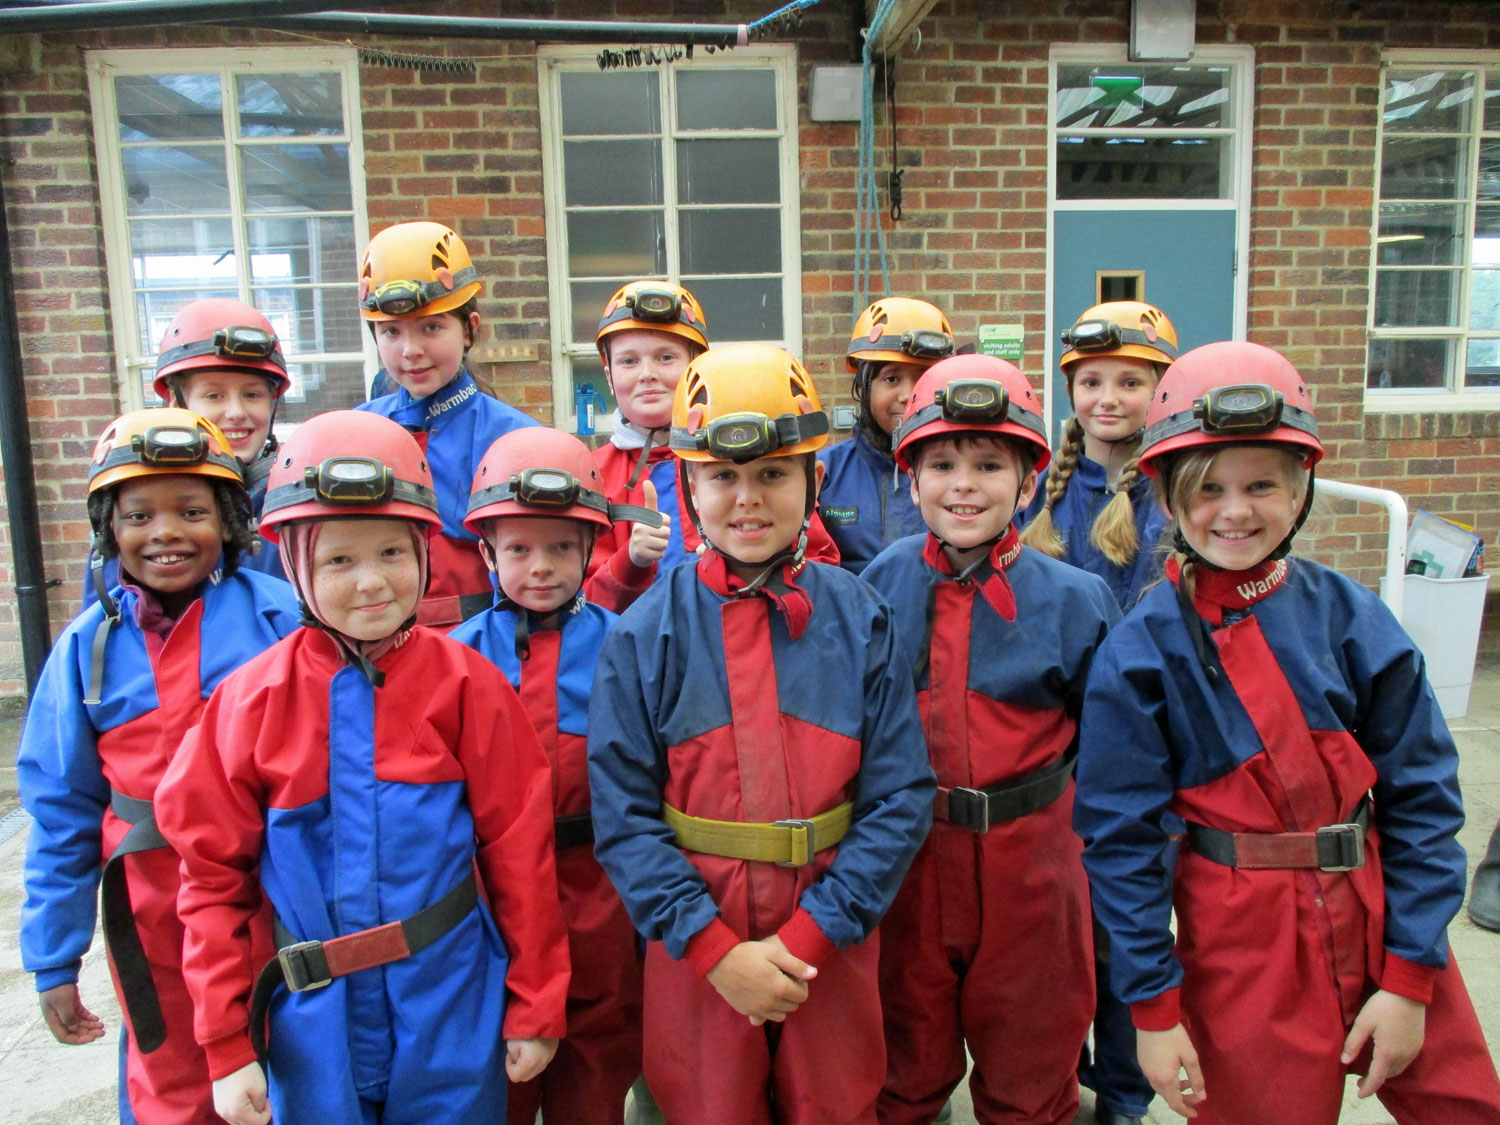 Students stand for a group photo wearing their caving suits and helmets with headtorches